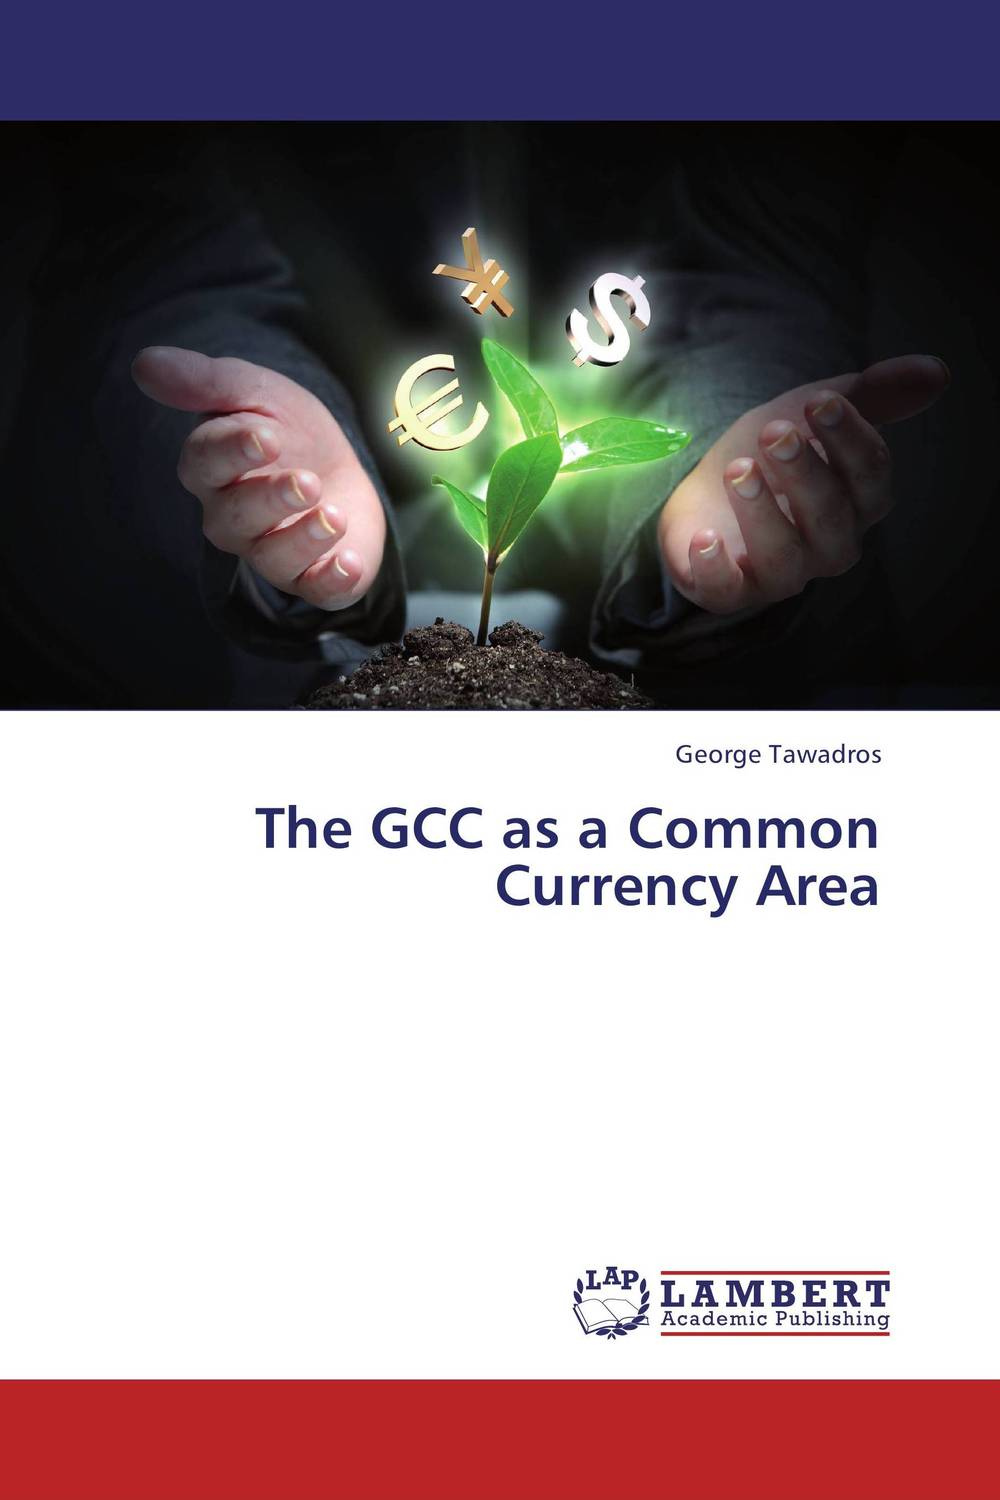 The GCC as a Common Currency Area the common link